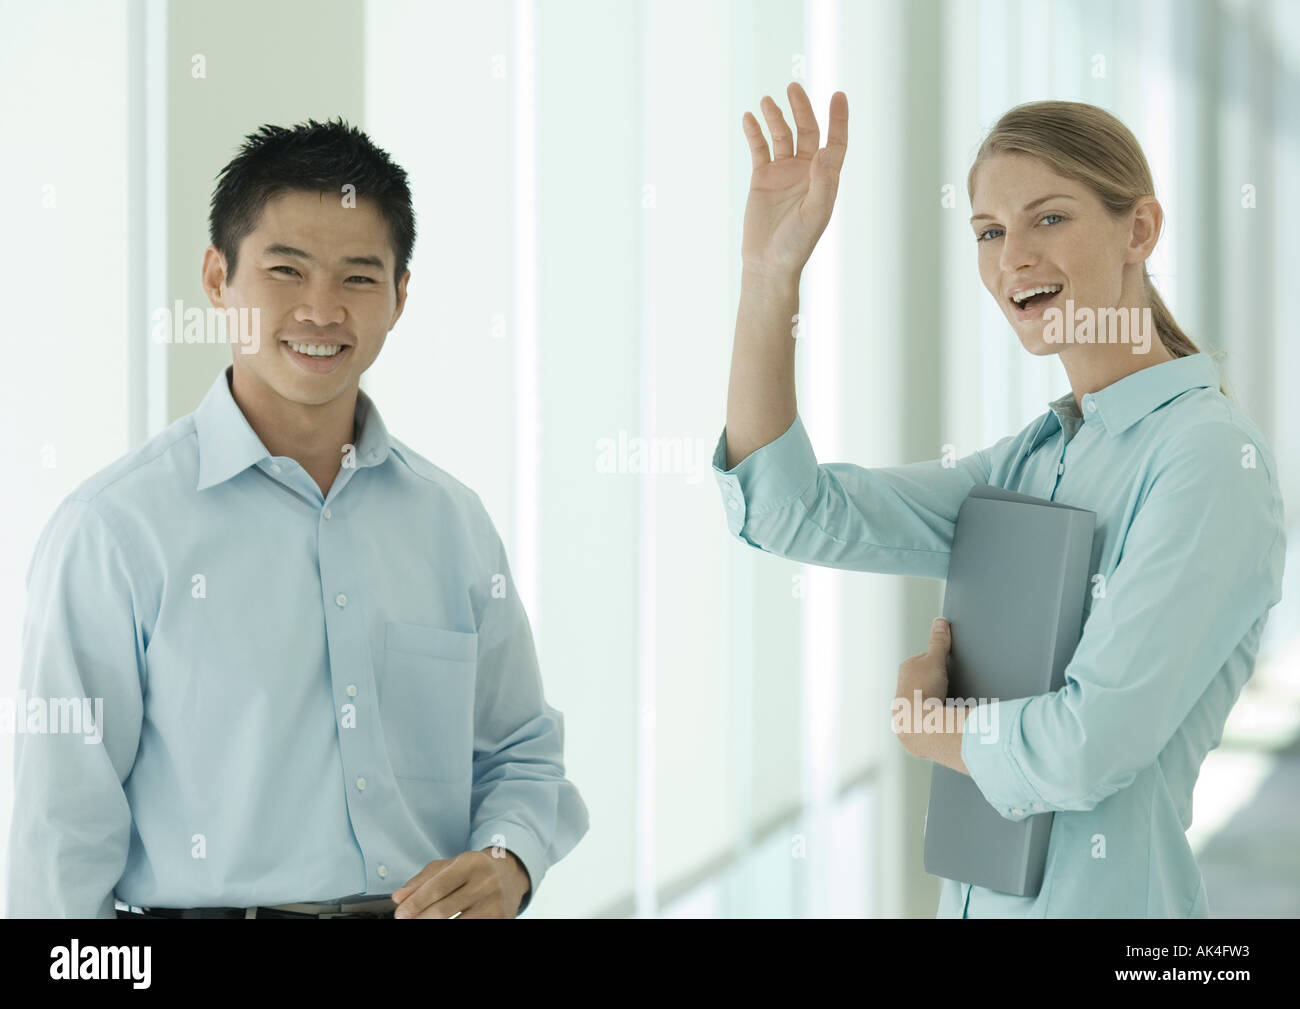 Office workers smiling and waving to camera - Stock Image